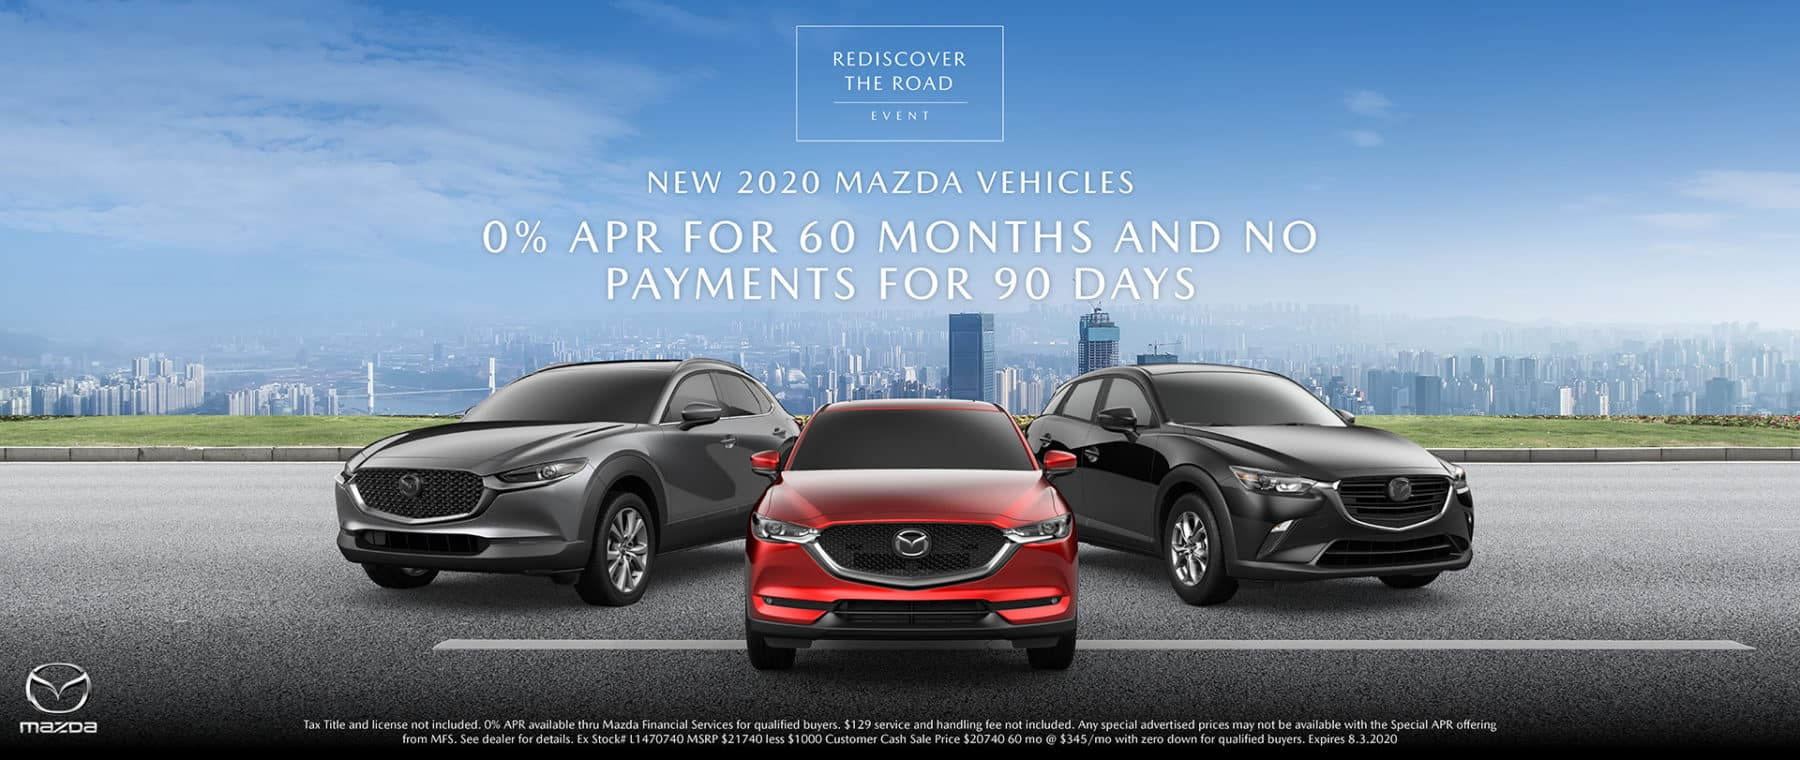 Get 0& APR for 60 months and no payments for 90 days on New 2020 Mazda Vehicles